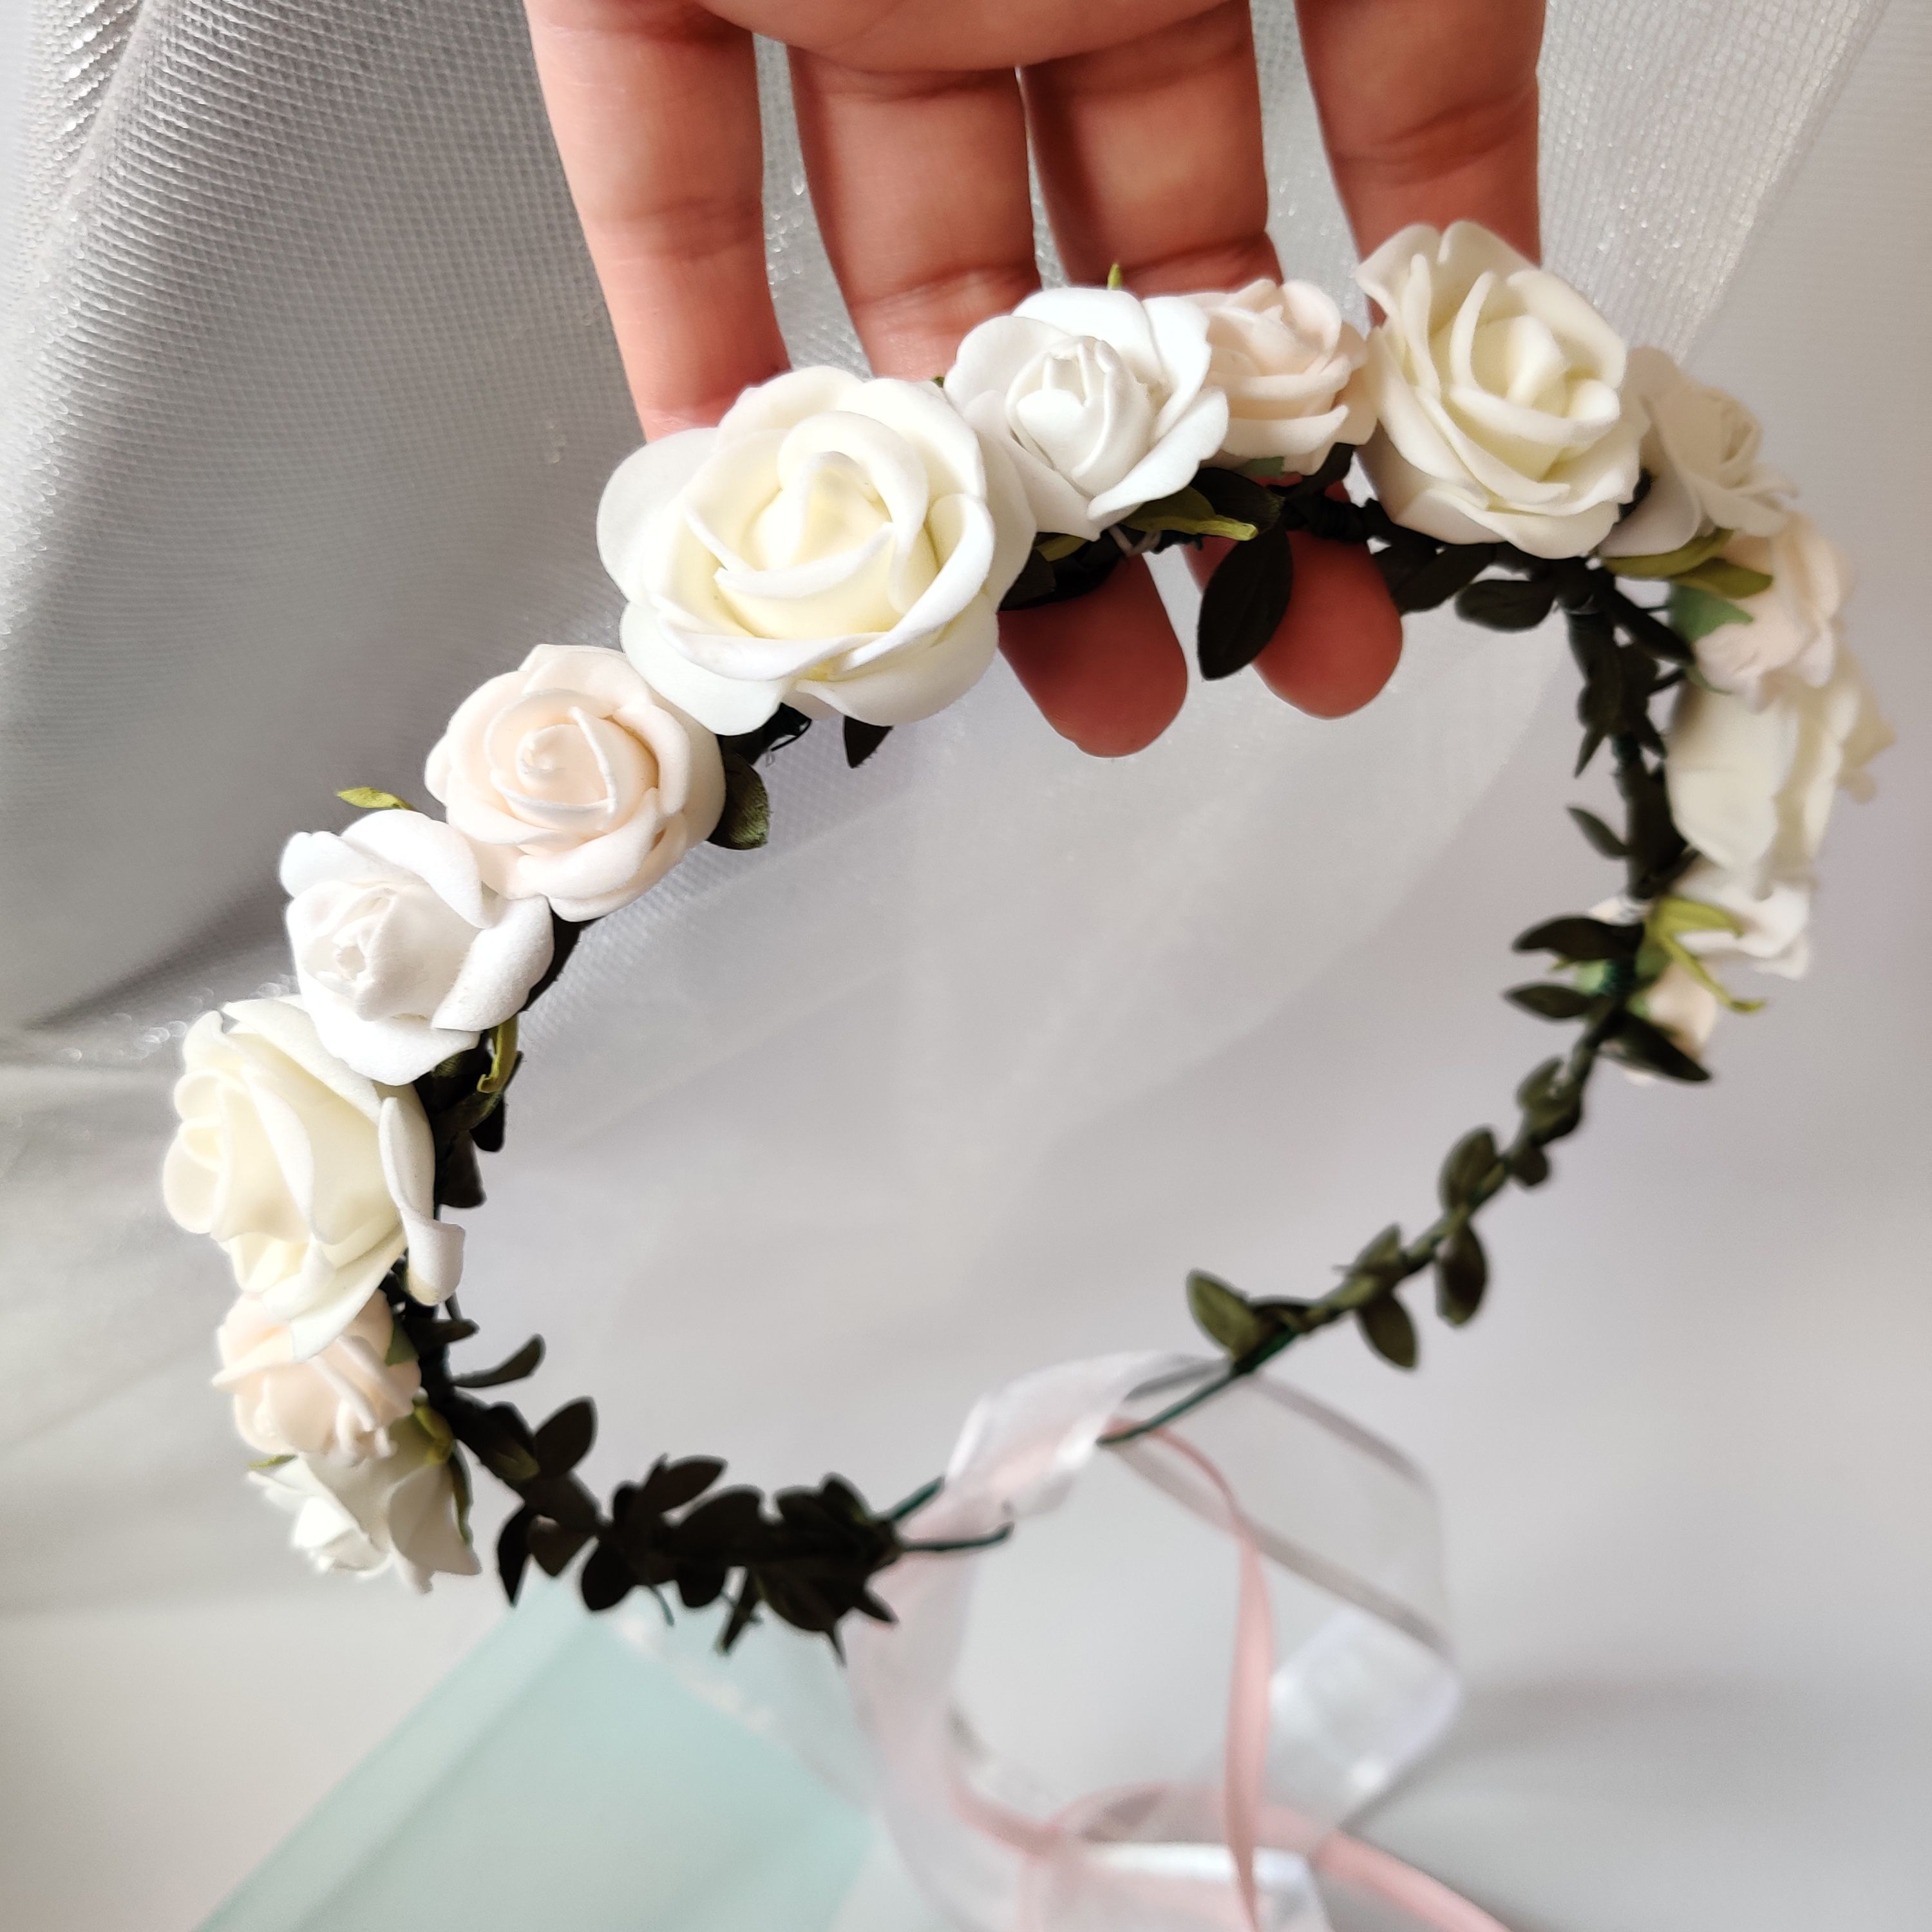 rose gold crown white hairpiece girl jeweled hairpiece rose flower girl flower crown girl White crown flower girl vintage flwoer girl